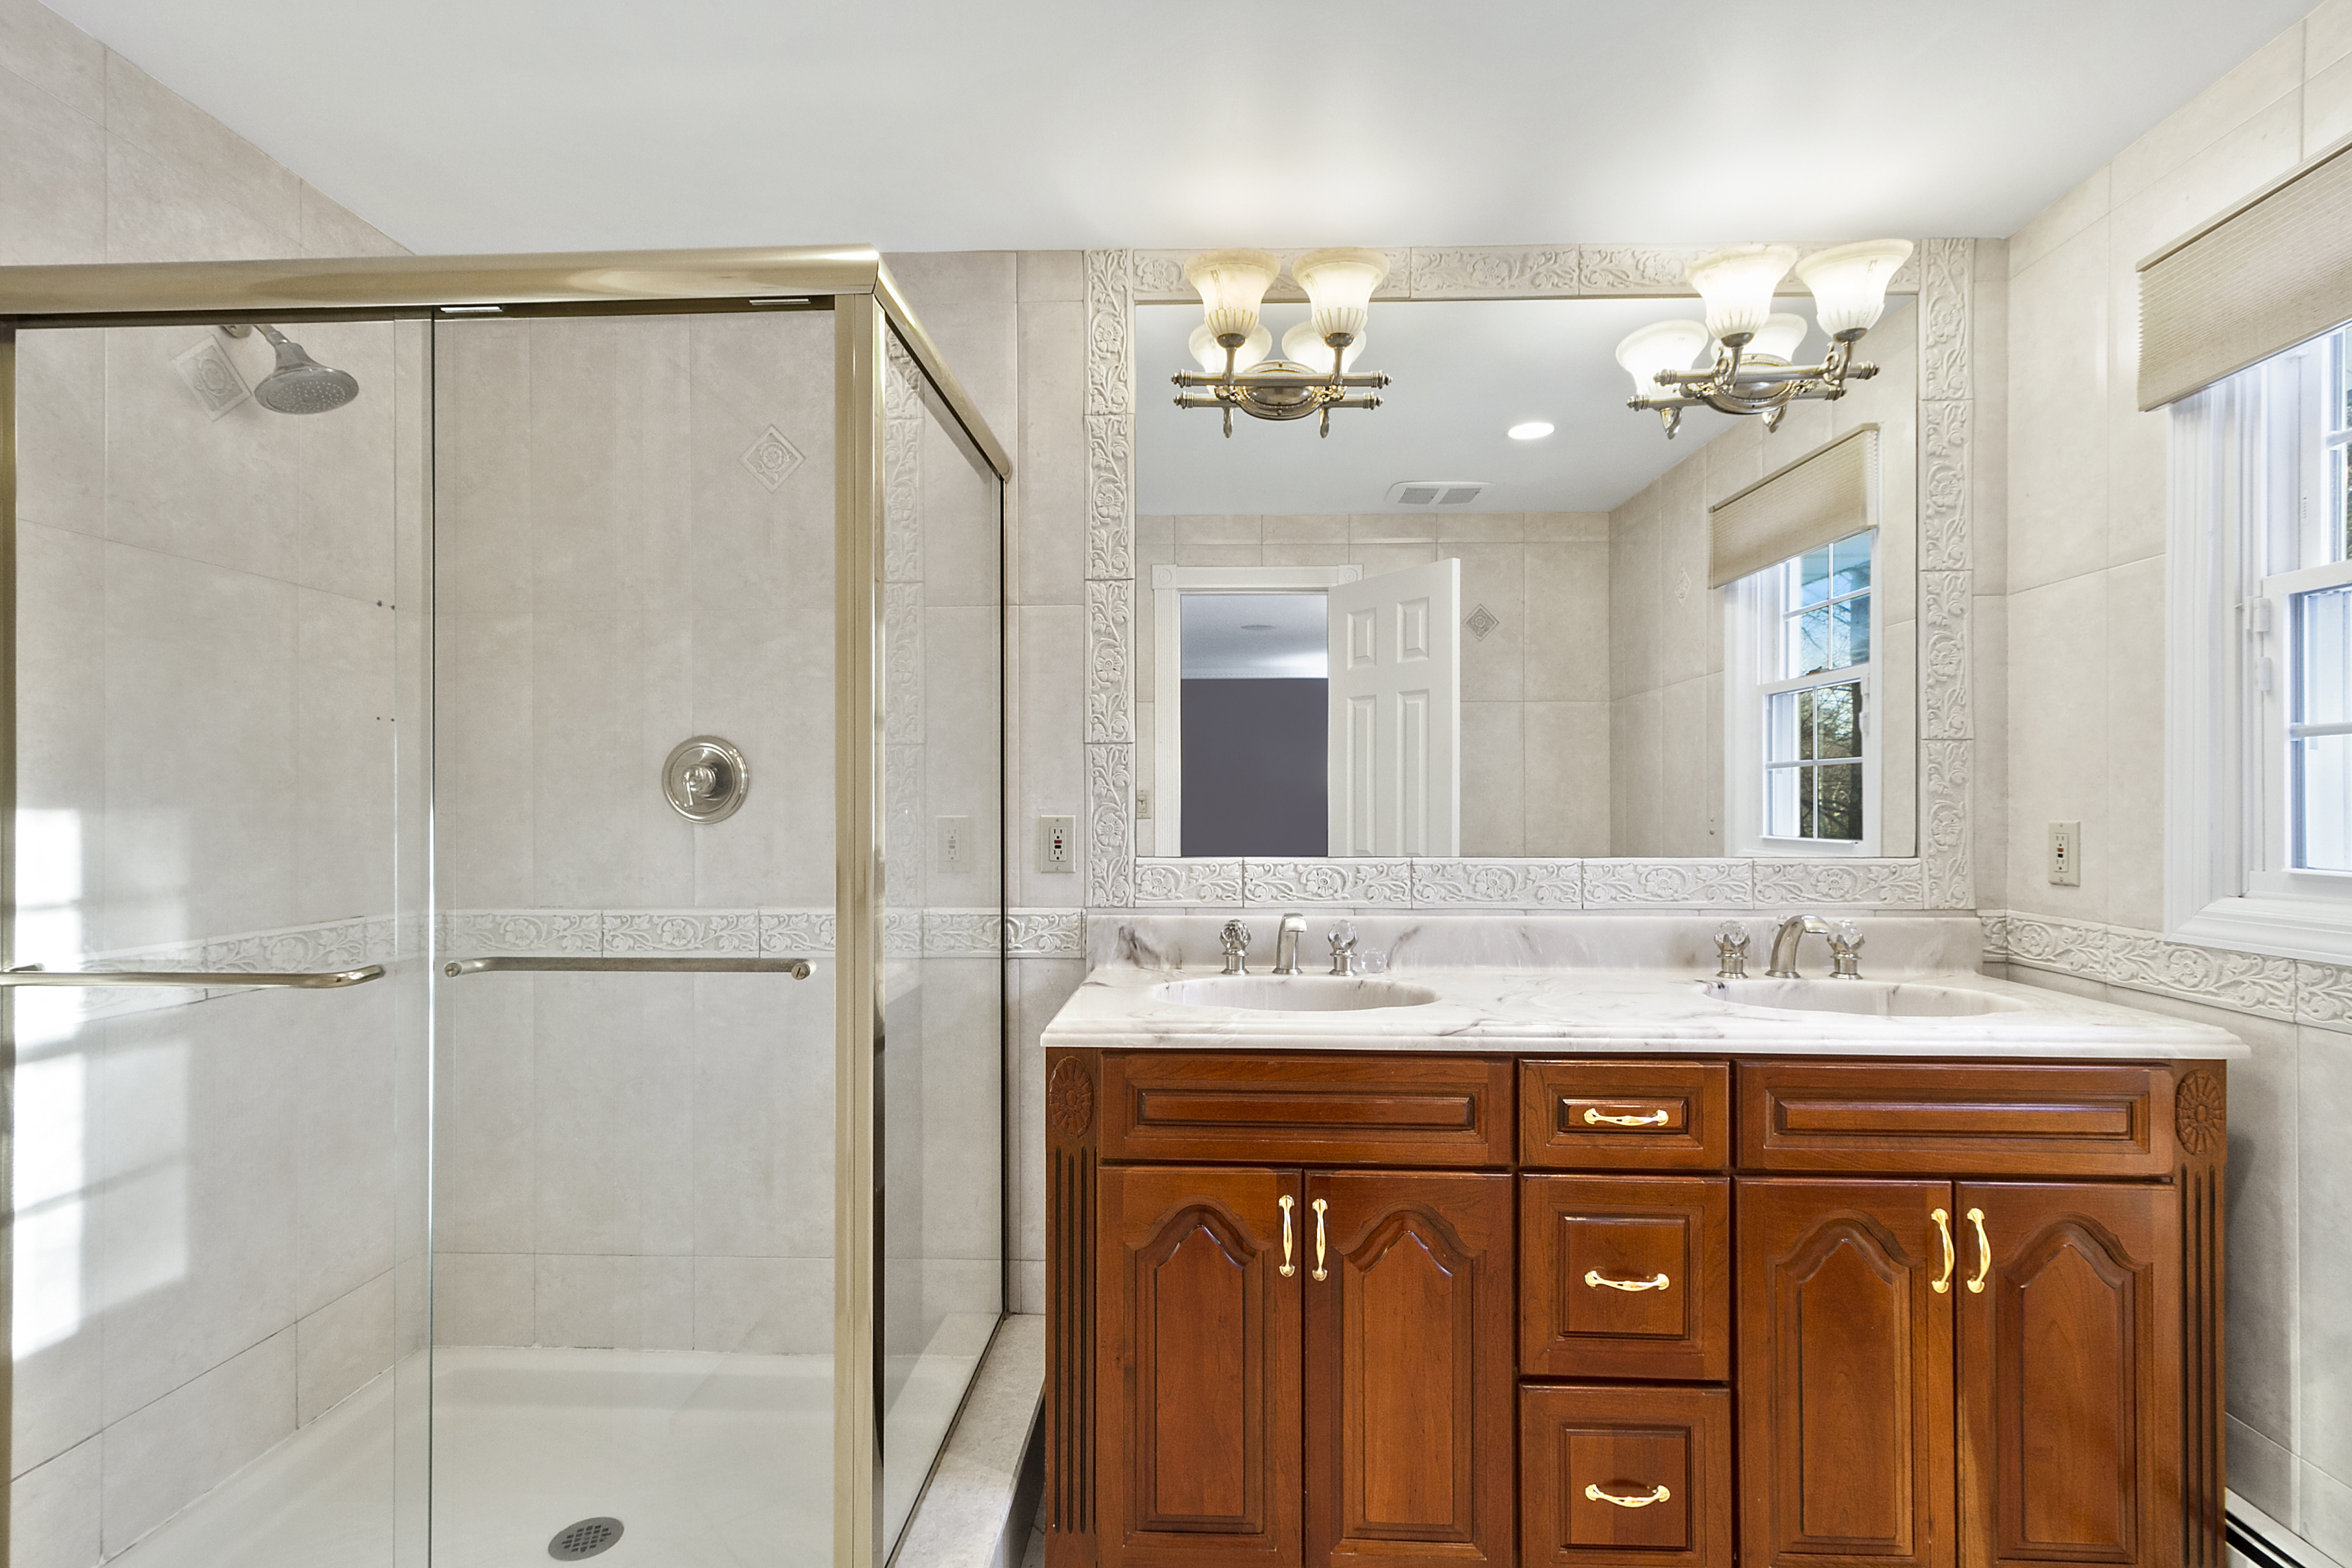 how to lay tiles in bathroom 84 woodchuck hollow rd cold hrbr property listing 25439